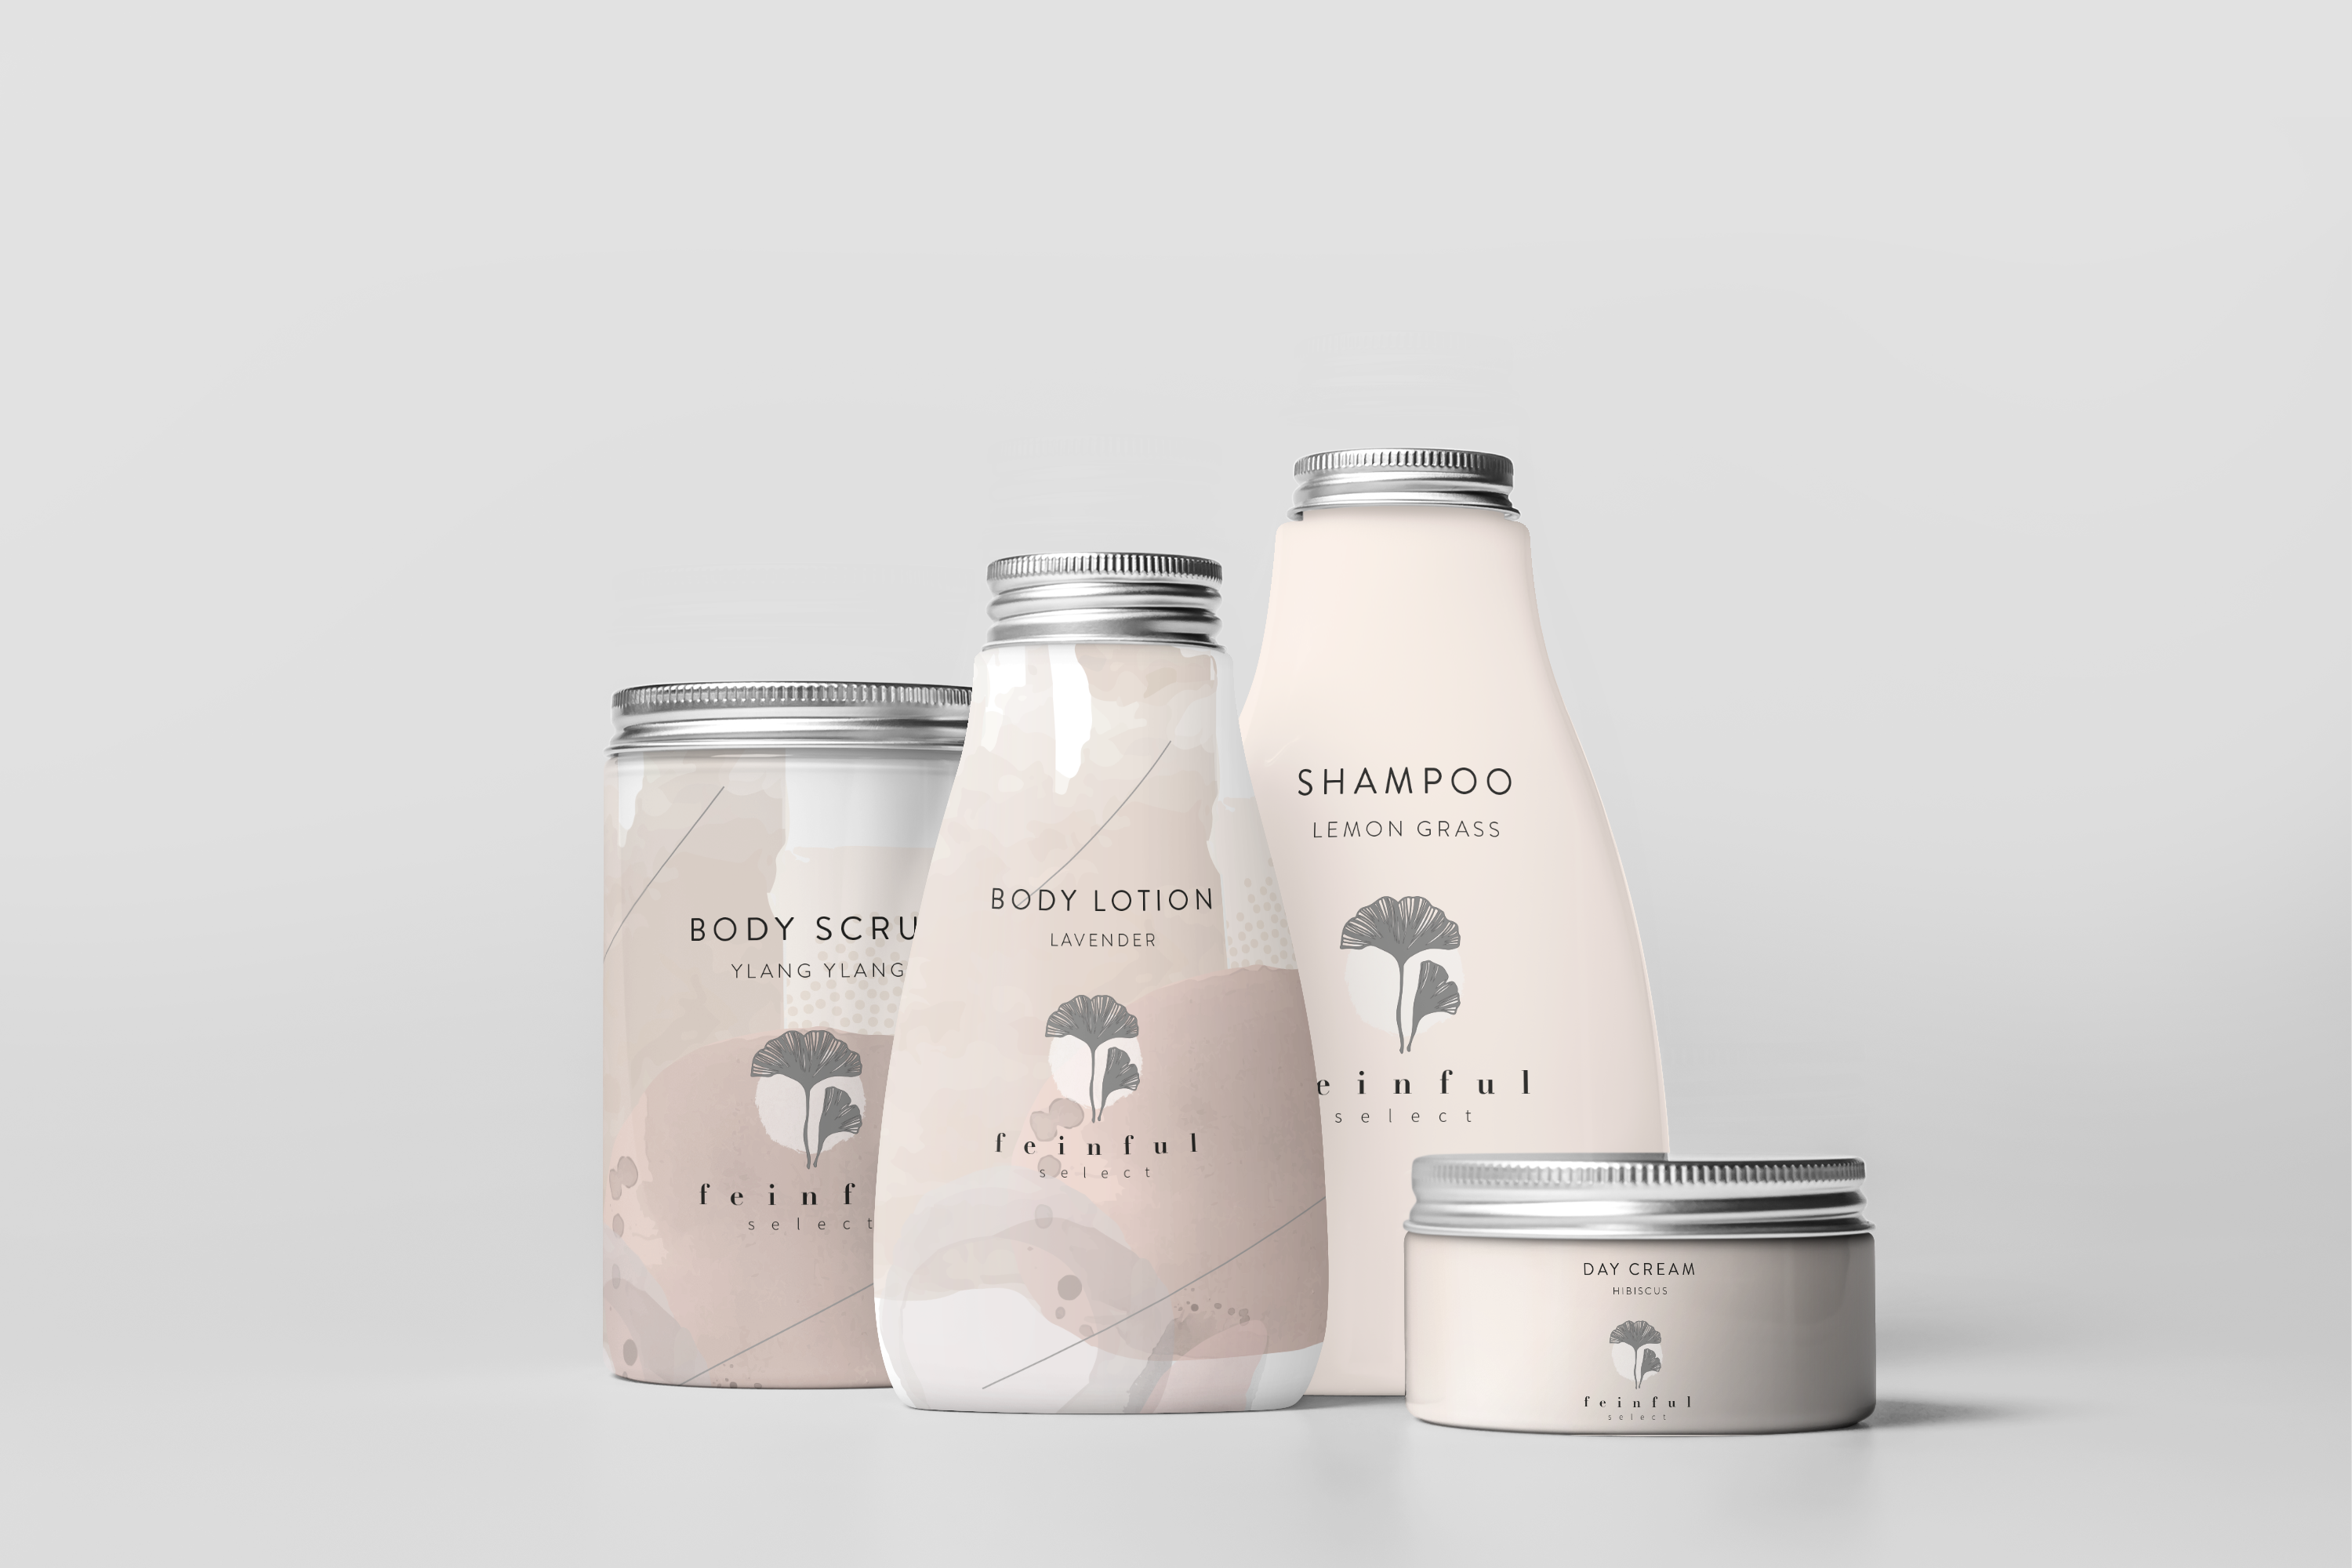 packaging design, graphic design, graphic designer, packaging, product design, design, branding, visual identity, creative business, creative agency, graphic design agency